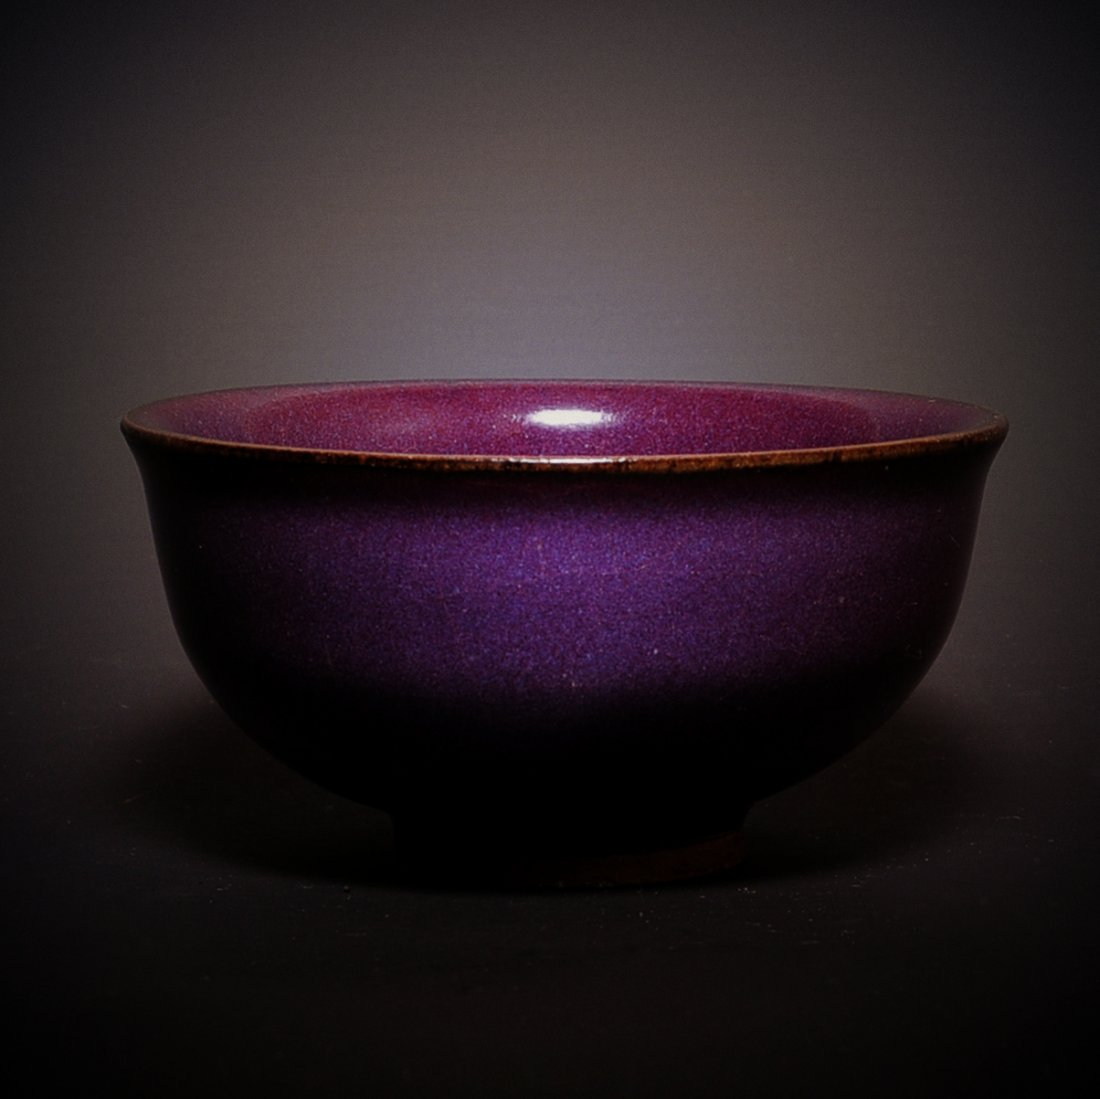 EARLY MING DYNASTY, A ROSE PURPLE PORCELAIN BOWL